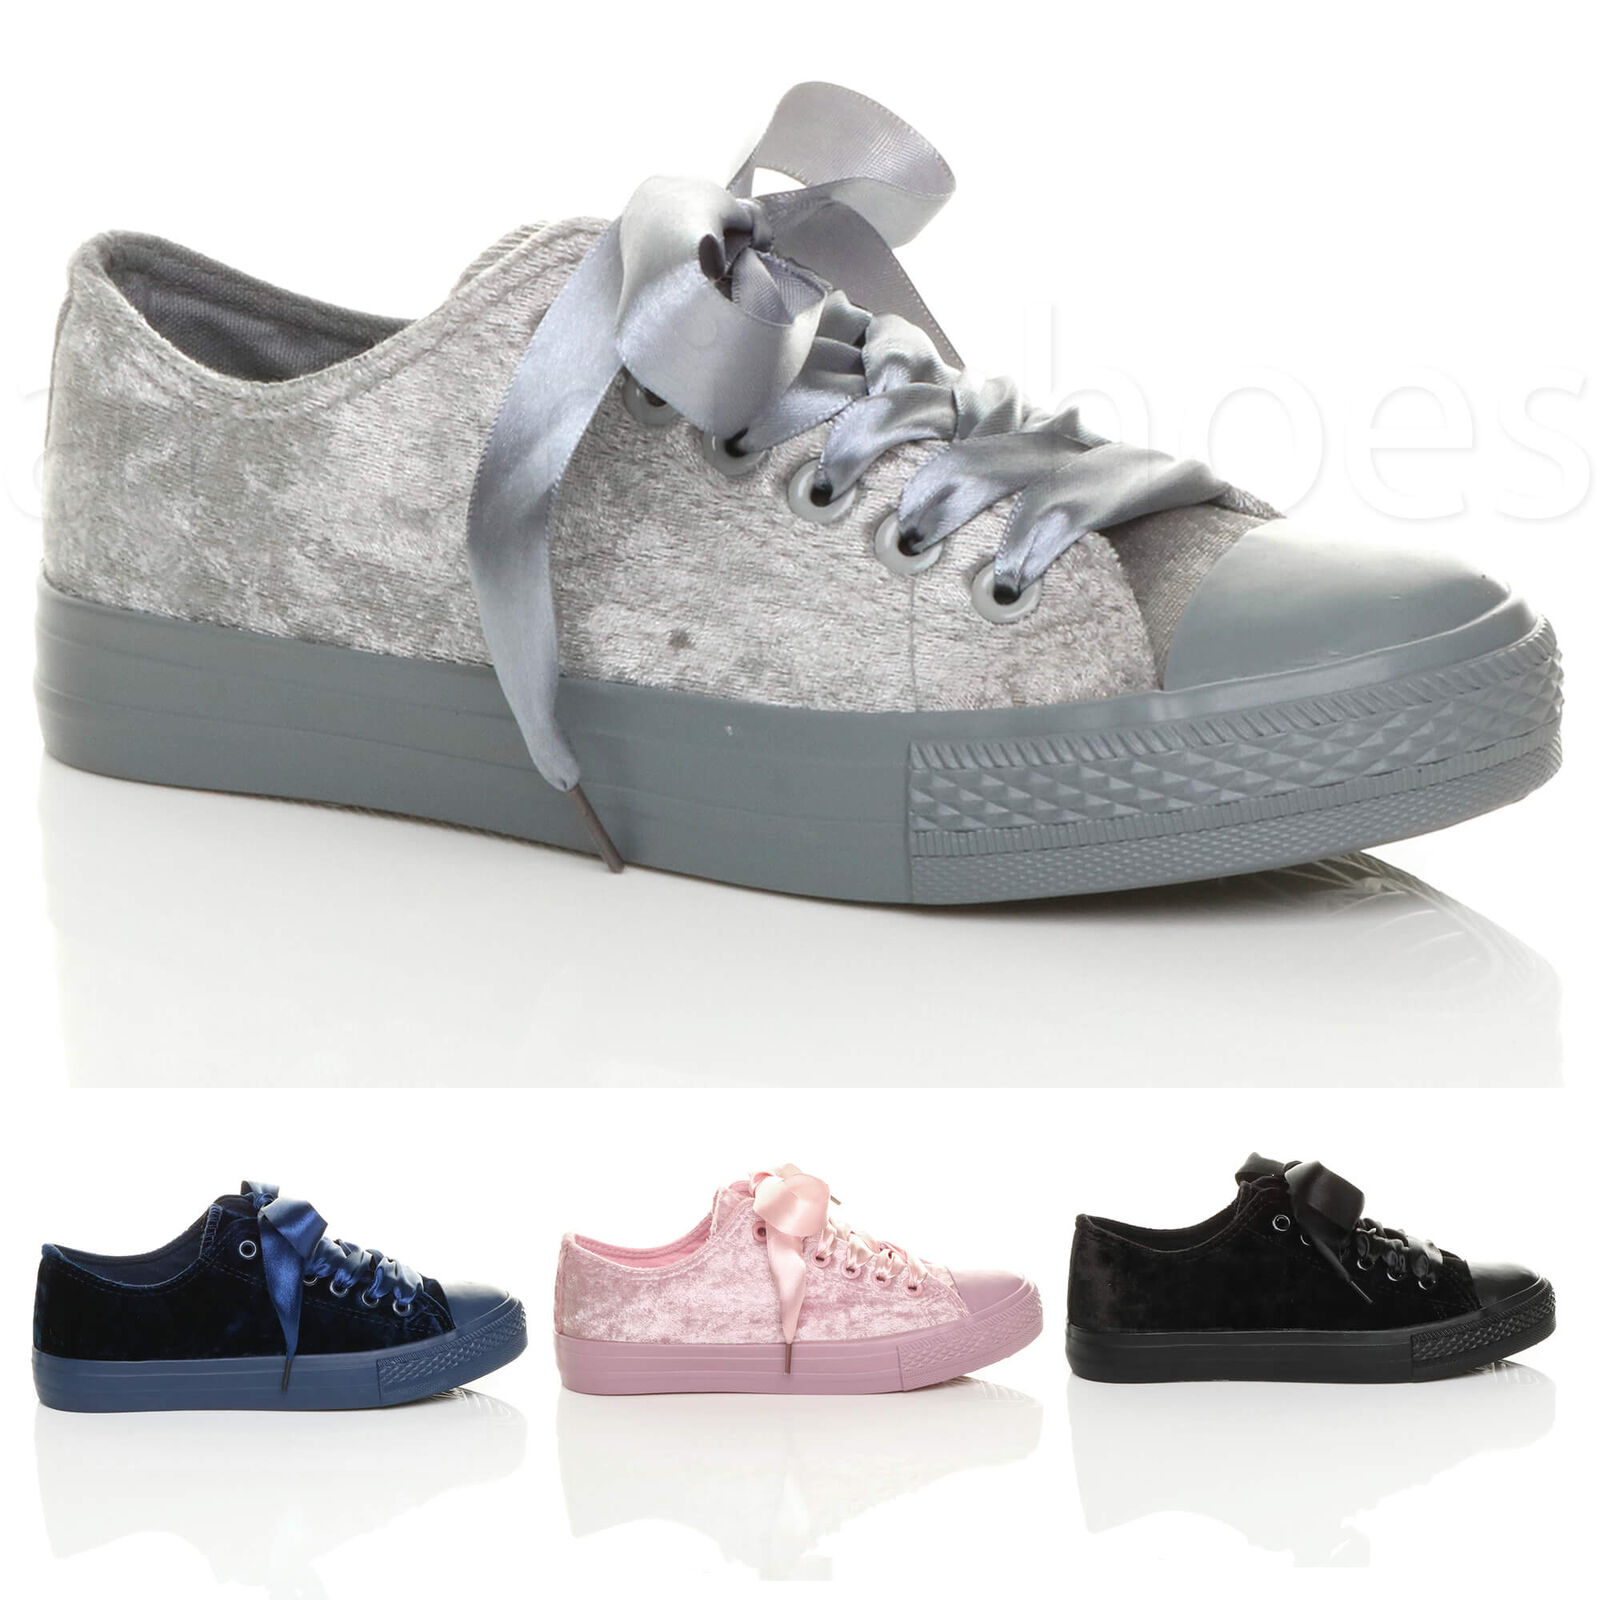 Femme Femmes Ruban Lacets Velours Baseball Low Chaussures Top ESCARPINS Baskets Chaussures Low Taille e93aae